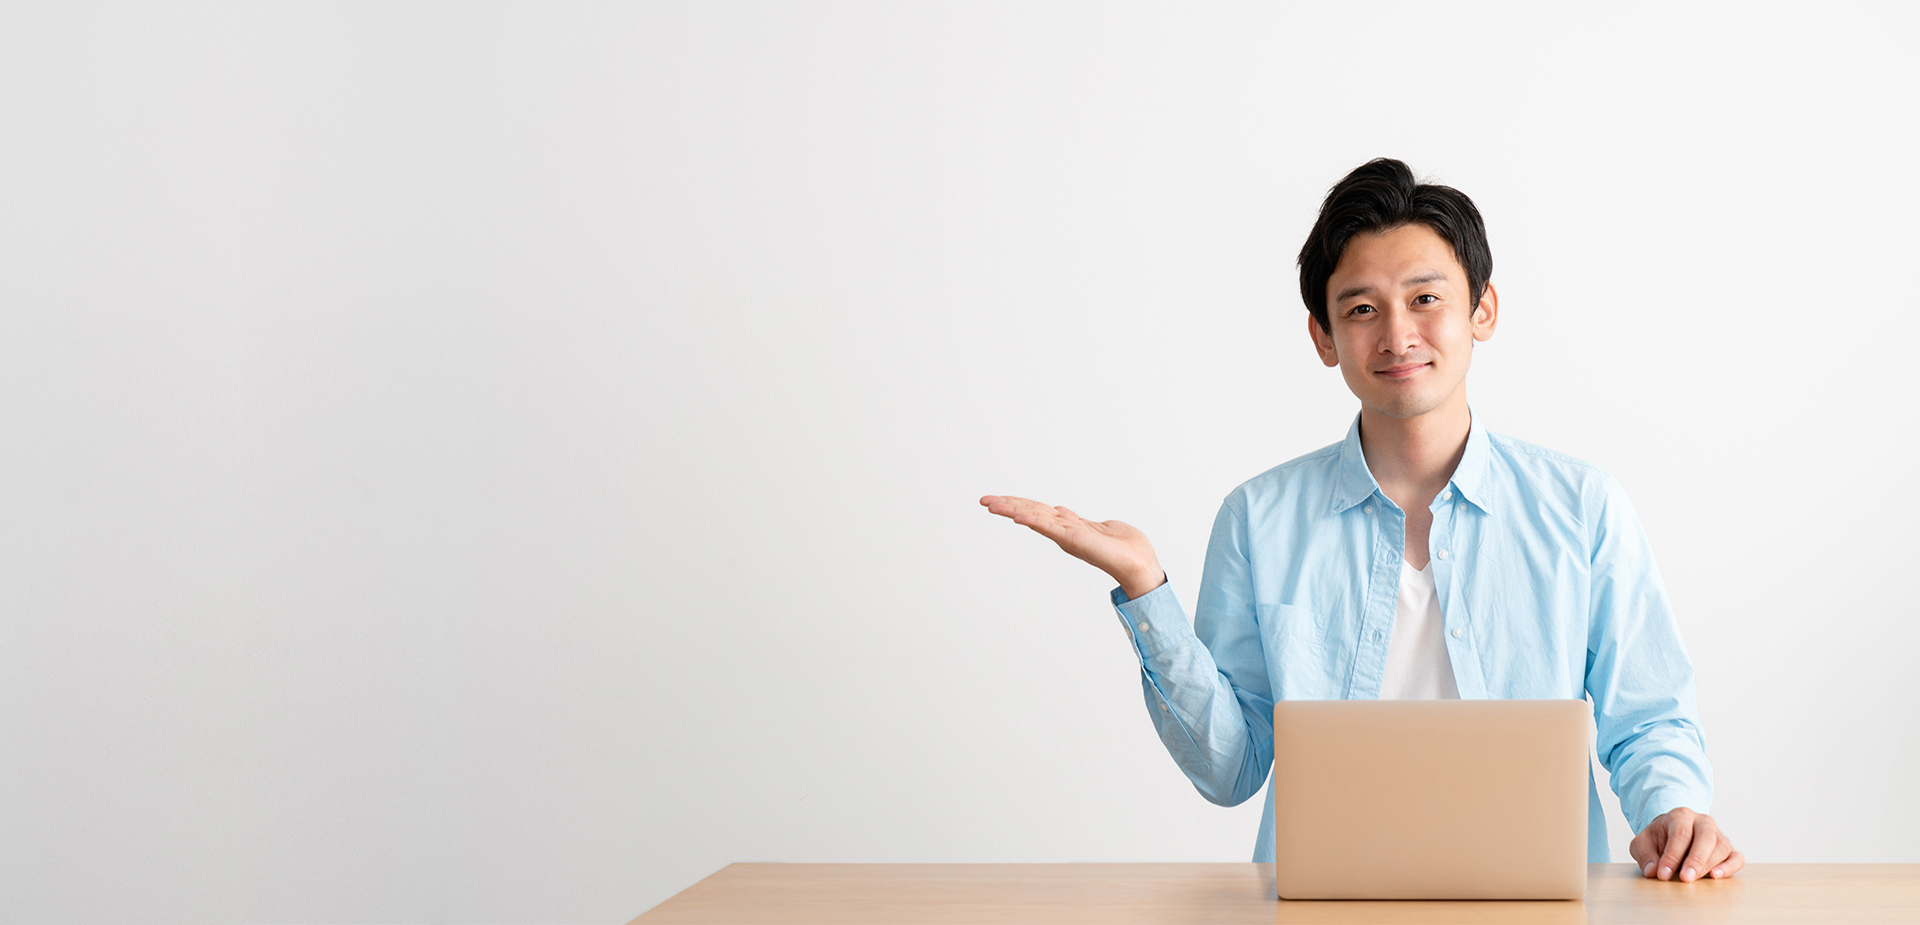 Person working on their laptop with their hand out